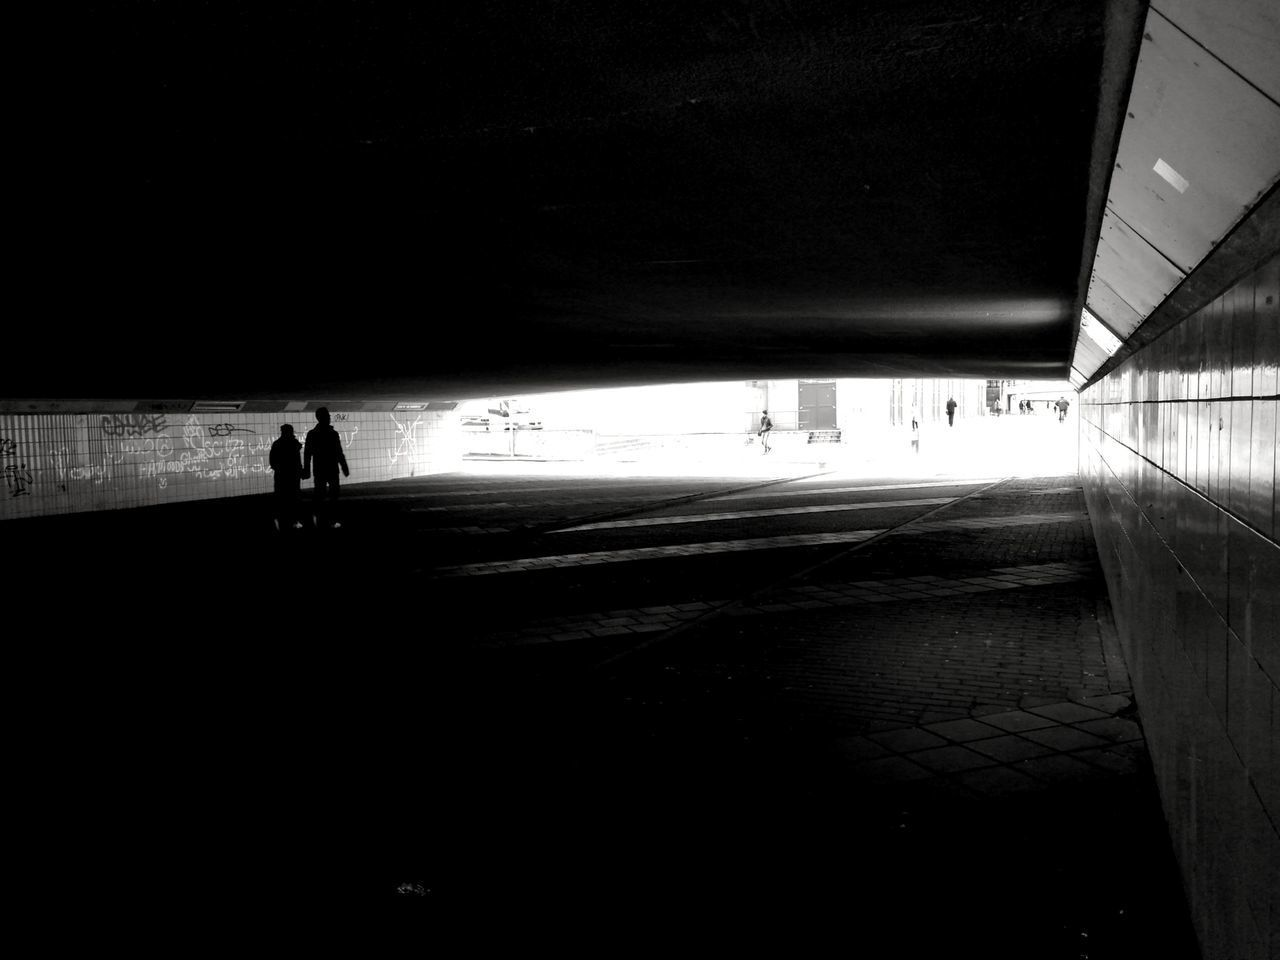 Silhouette Real People One Person People Adult Black & White Black And White Architecture Outdoors Transportation Silhouette Shadow Lifestyles The Way Forward Walking